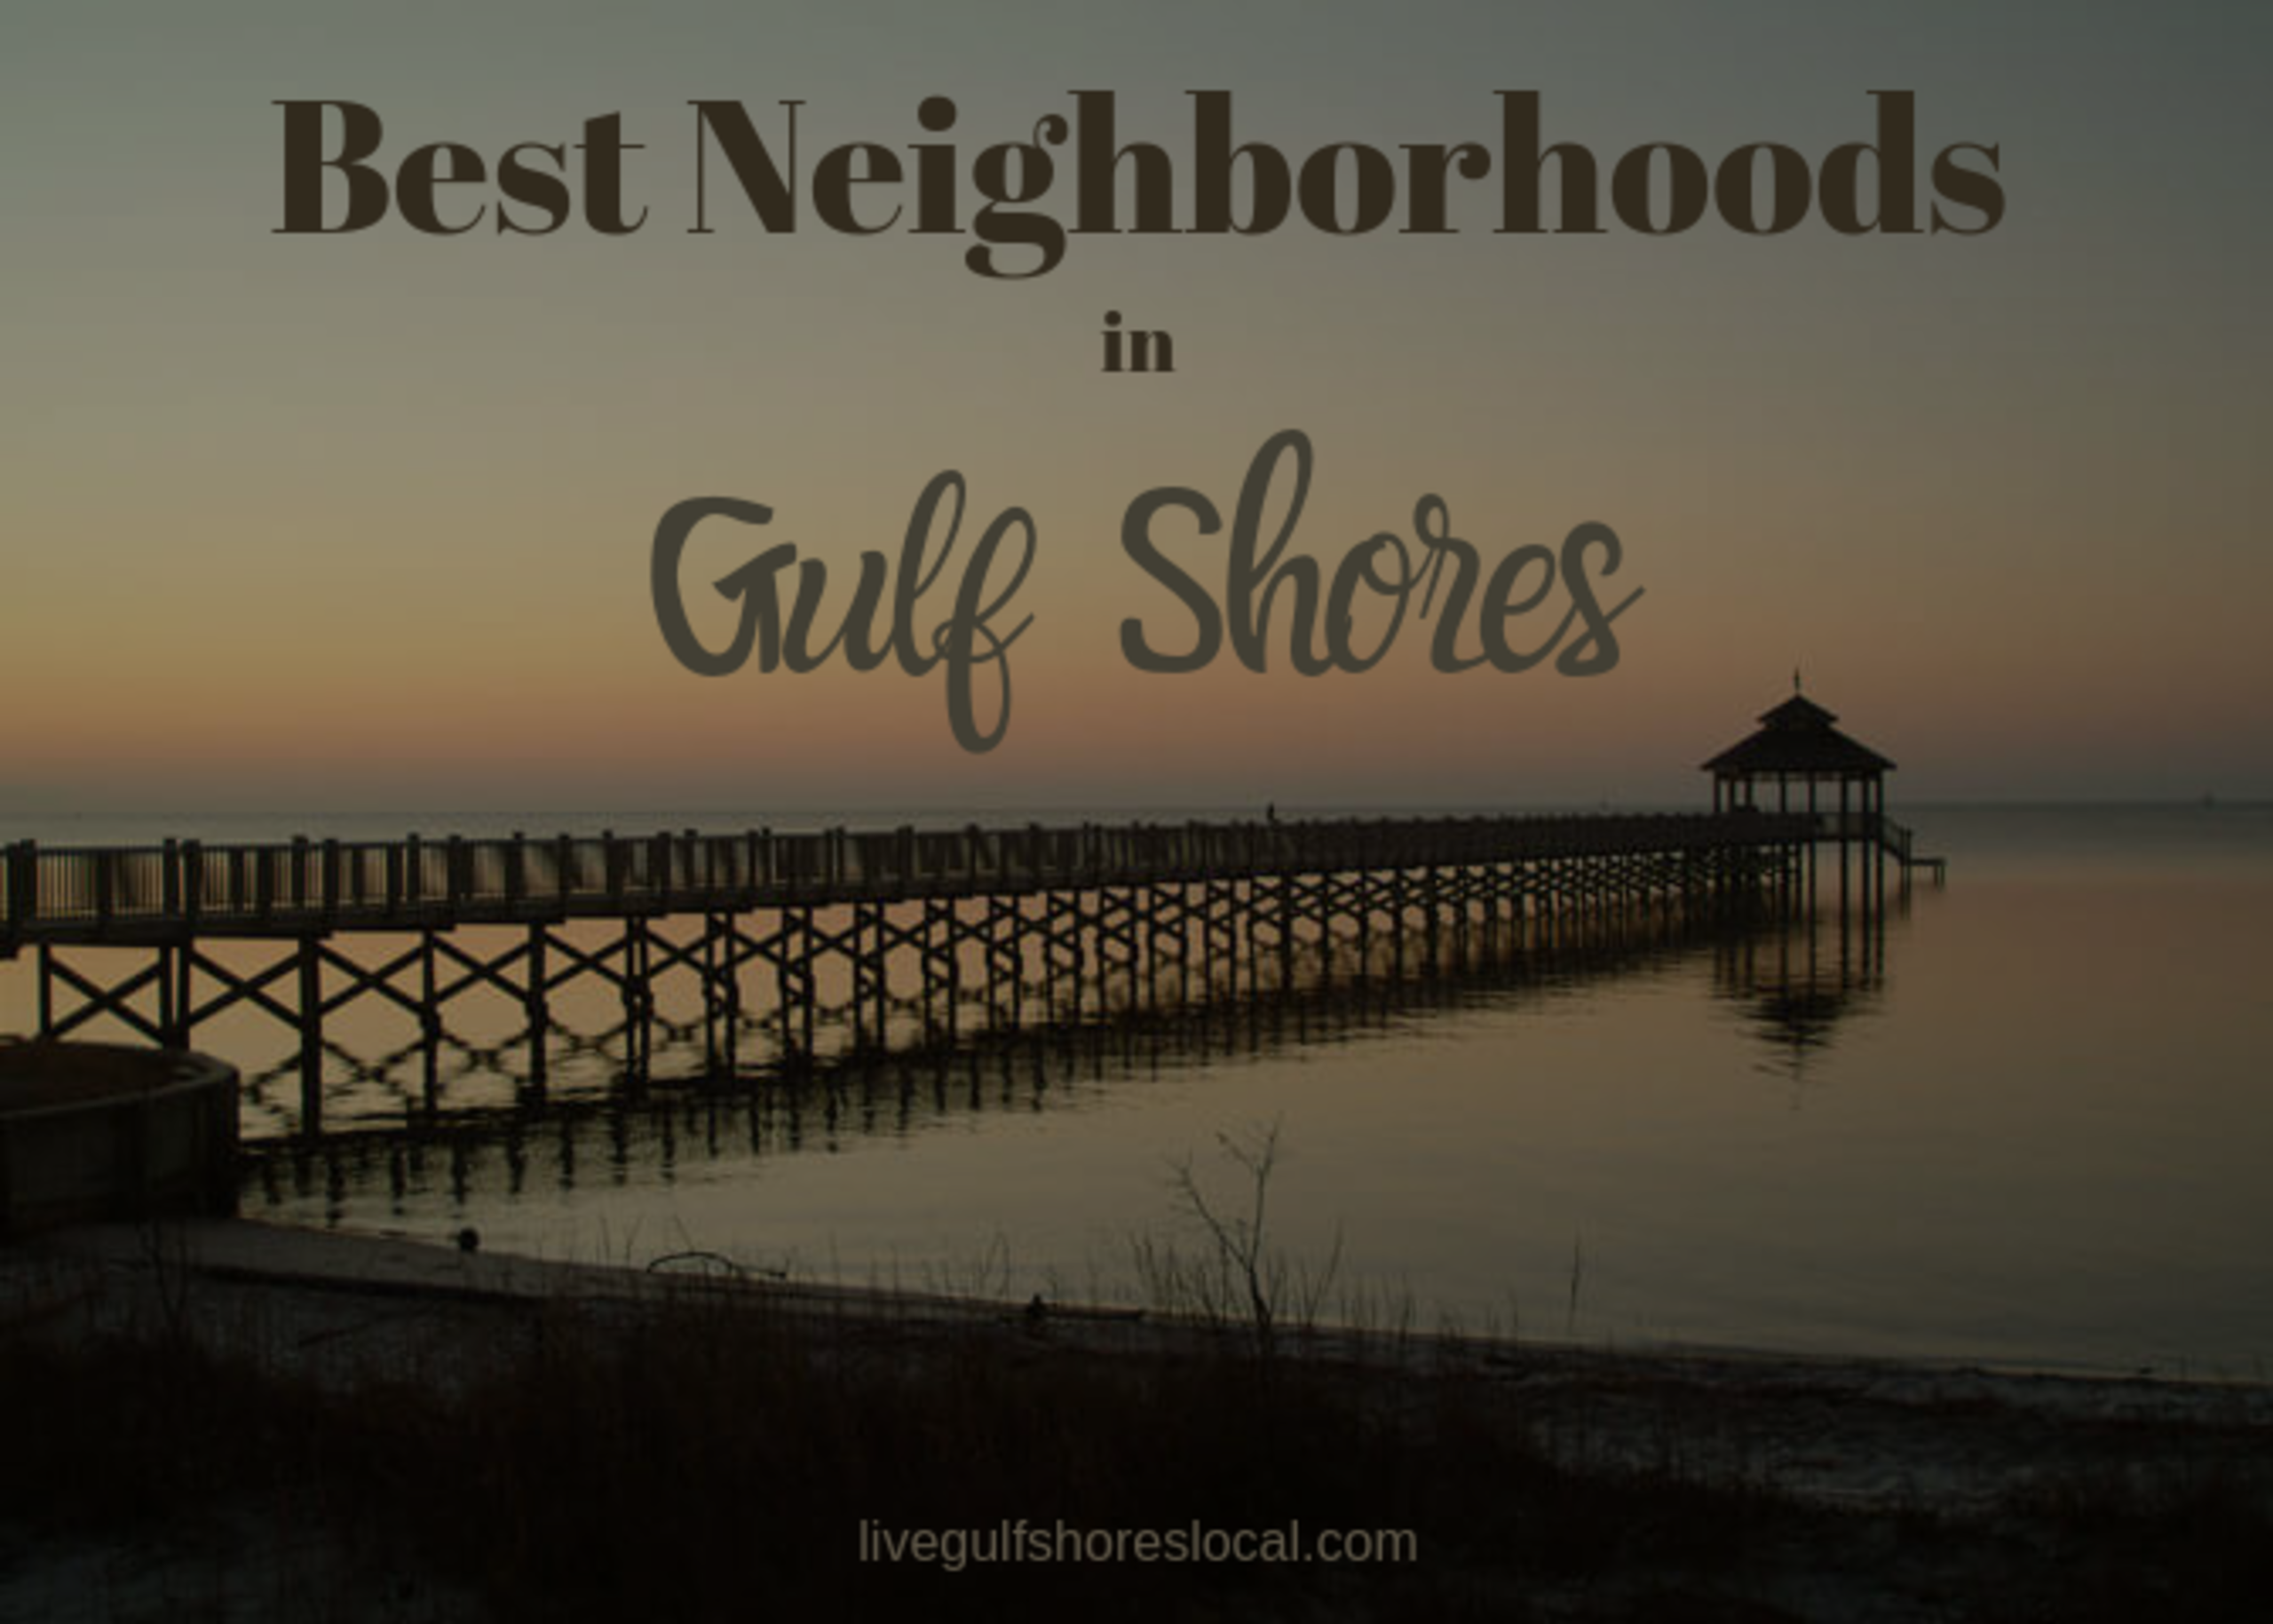 Best Neighborhoods in Gulf Shores – Spring 2019